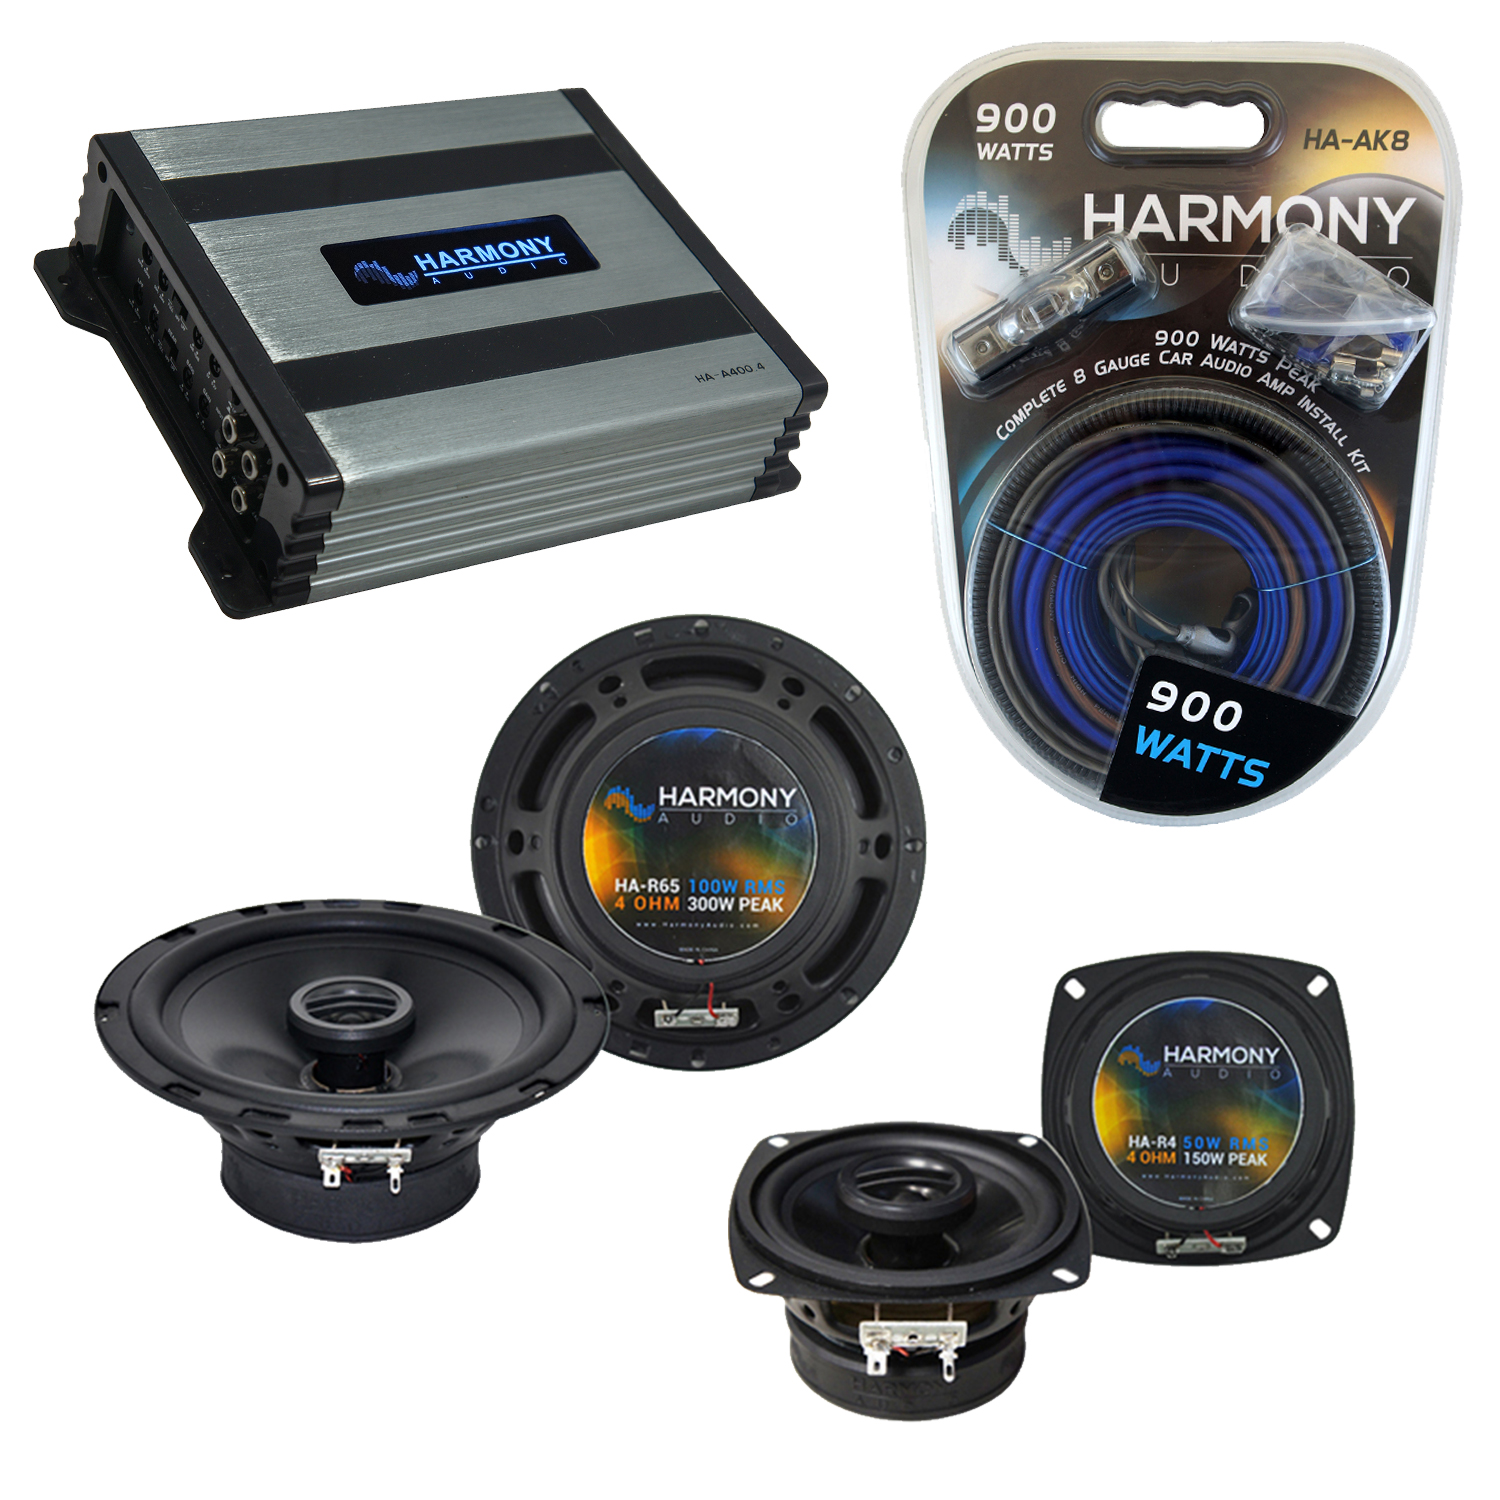 Compatible with Plymouth Laser 1990-1994 OEM Speaker Replacement Harmony R65 R4 & Harmony HA-A400.4 Amp